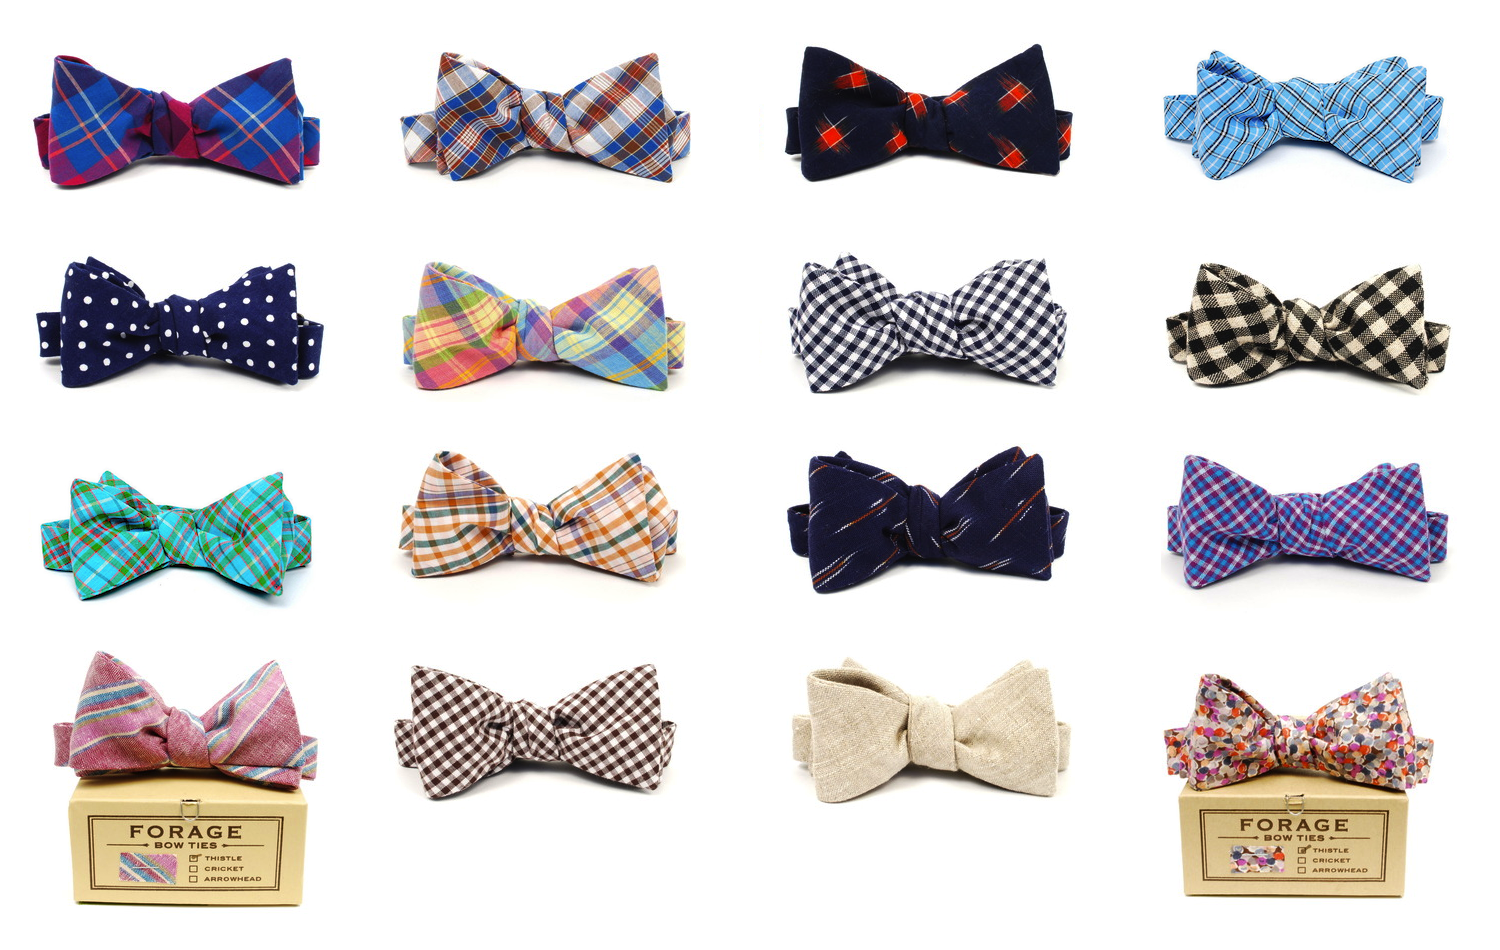 The bow tie / b oʊ / is a type of necktie.A modern bow tie is tied using a common shoelace knot, which is also called the bow knot for that reason. It consists of a ribbon of fabric tied around the collar of a shirt in a symmetrical manner so that the two opposite ends form loops.. There are generally three types of bow ties: the pre-tied, the clip on, and the self tie.